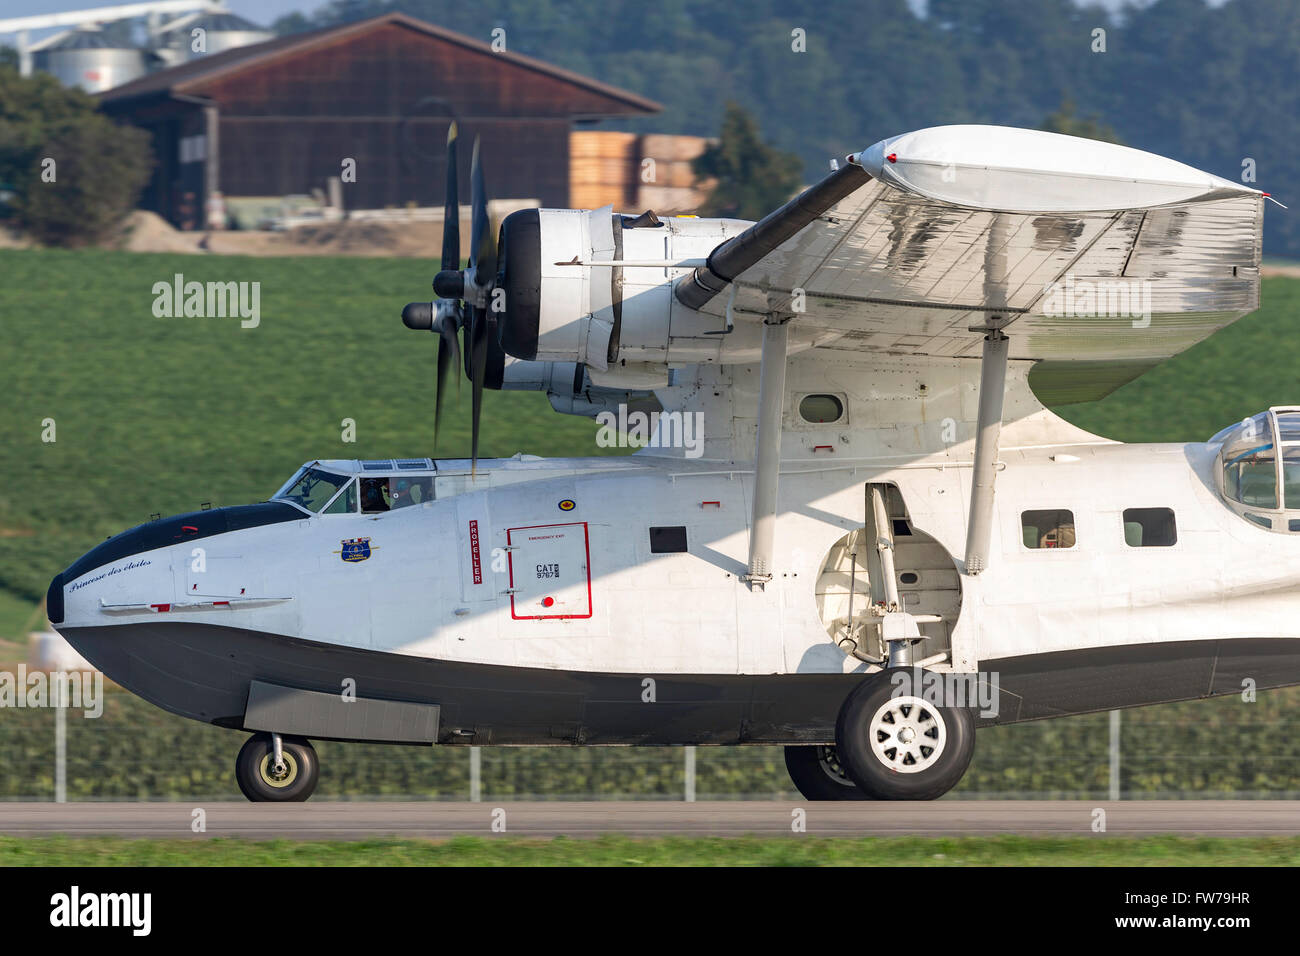 World War II era Consolidated PBY-5A Catalina Flying Boat N9767. The Catalina was maritime patrol aircraft. - Stock Image